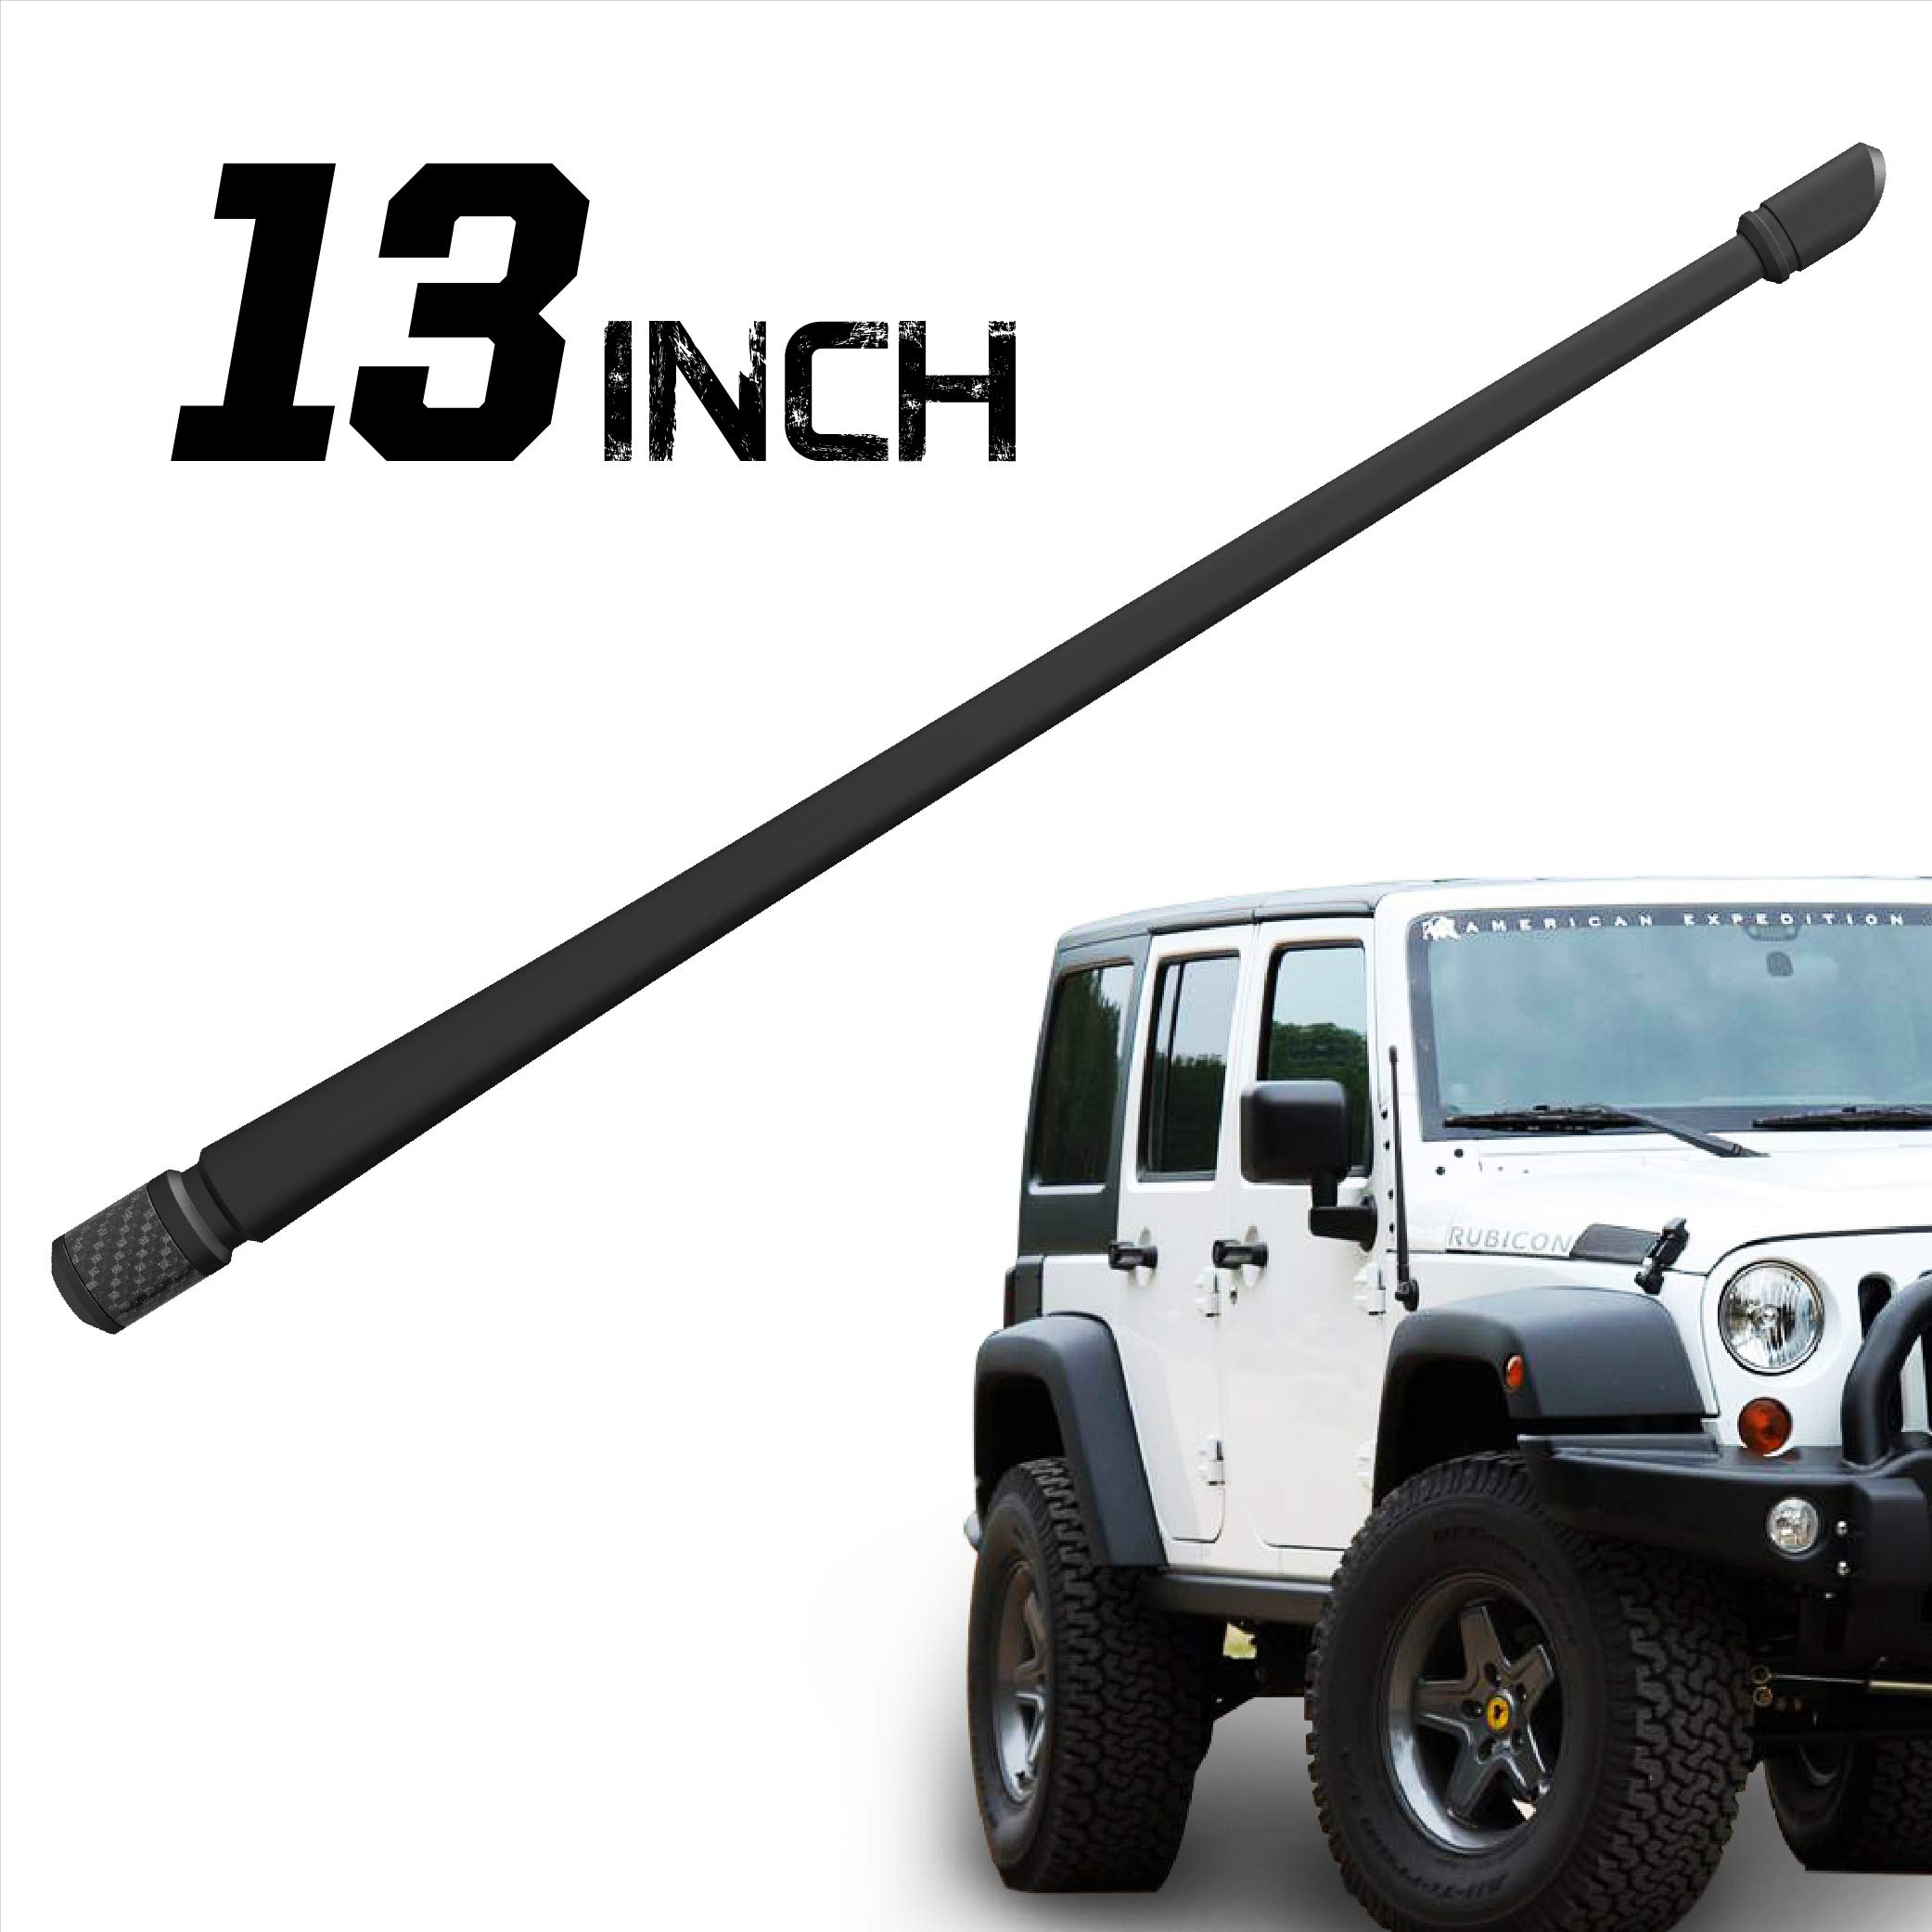 Rydonair Antenna Compatible with Jeep Wrangler JK JKU JL JLU Rubicon Sahara (2007-2019) | 13 inches Flexible Rubber Antenna Replacement | Designed for Optimized FM/AM Reception by RYDONAIR